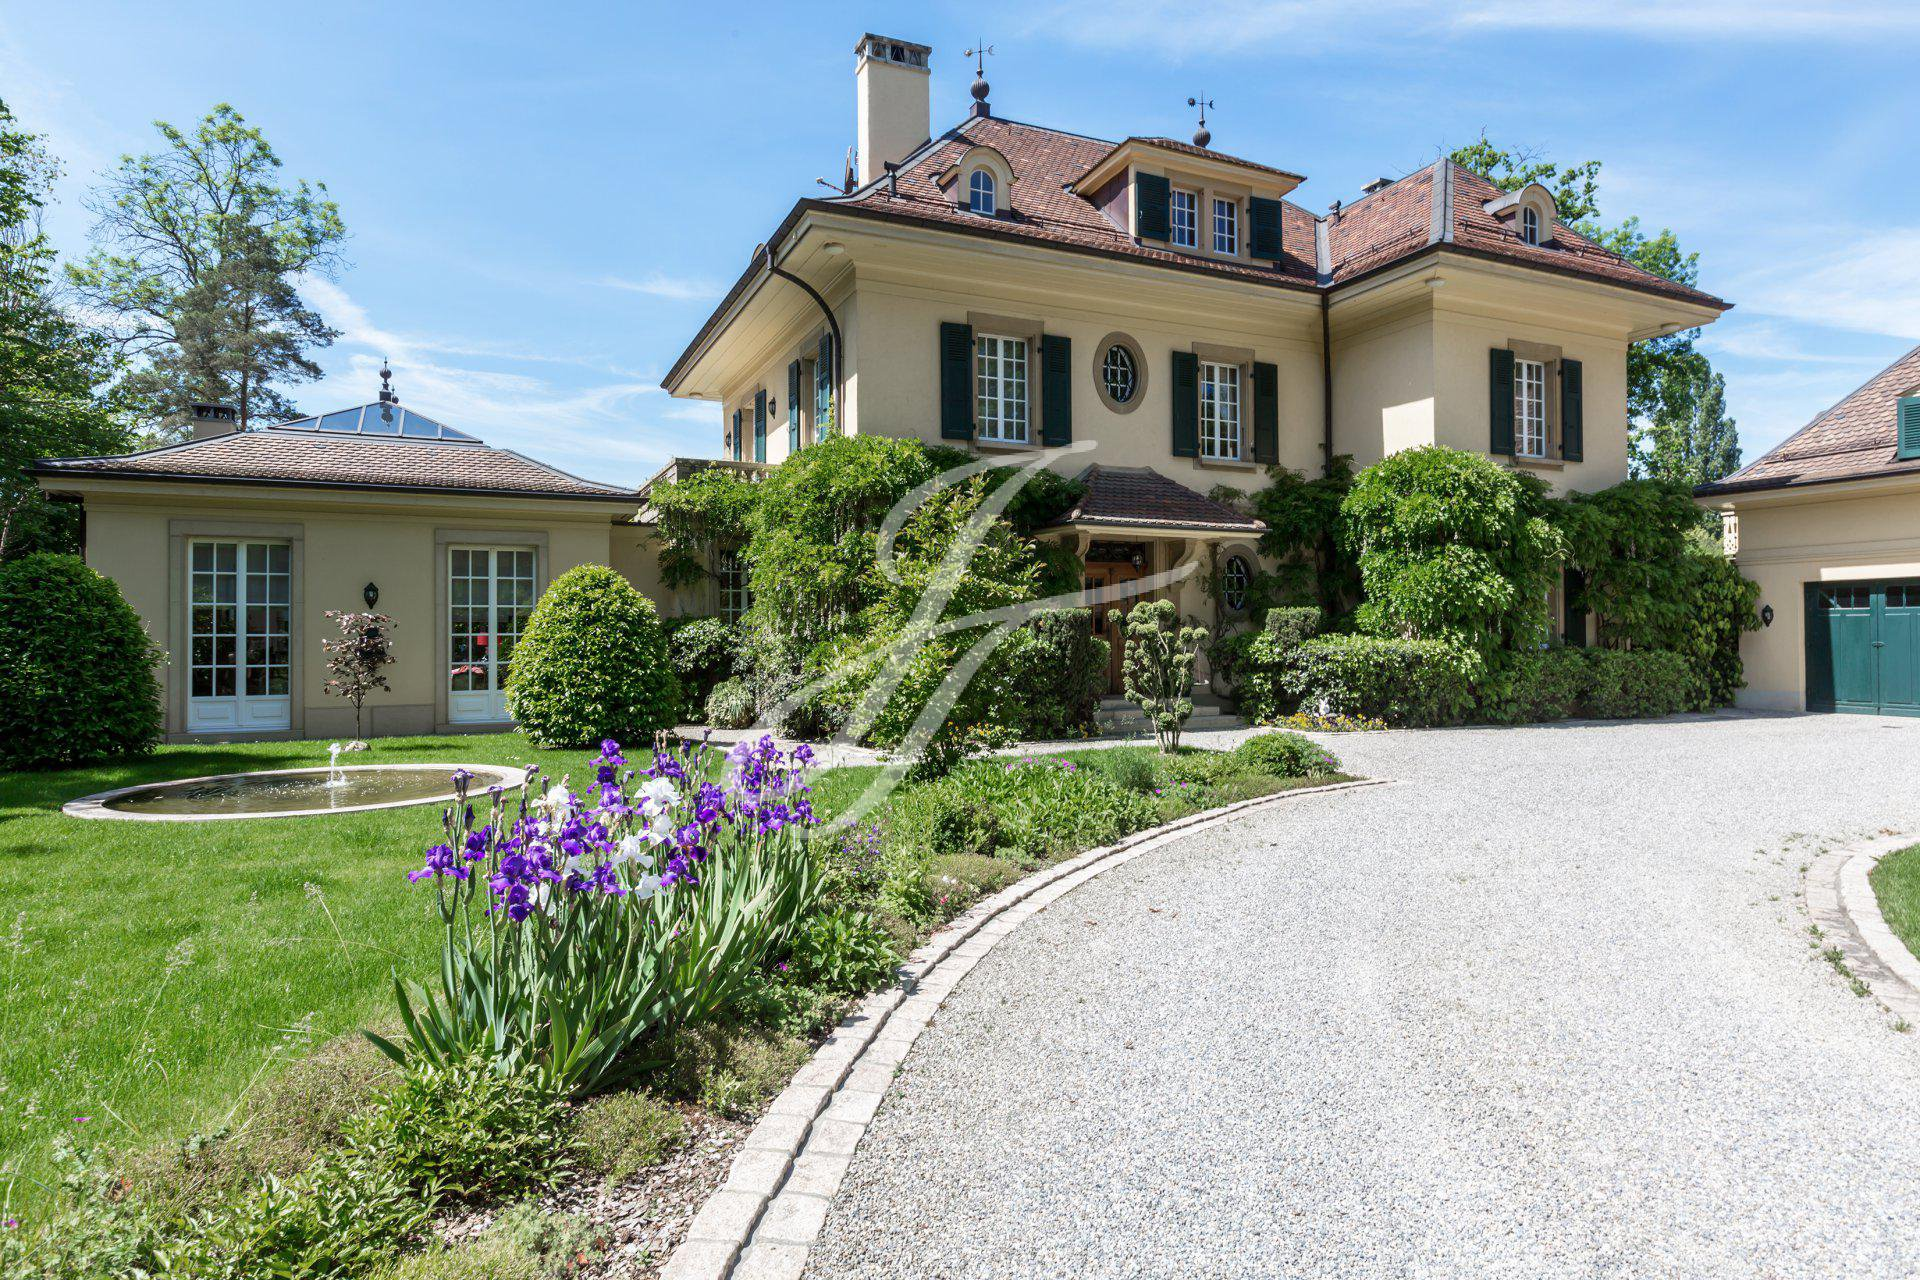 3-Luxury villa for sale in Geneva, Switzerland for sale | John Taylor Switzerland | FINEST RESIDENCES